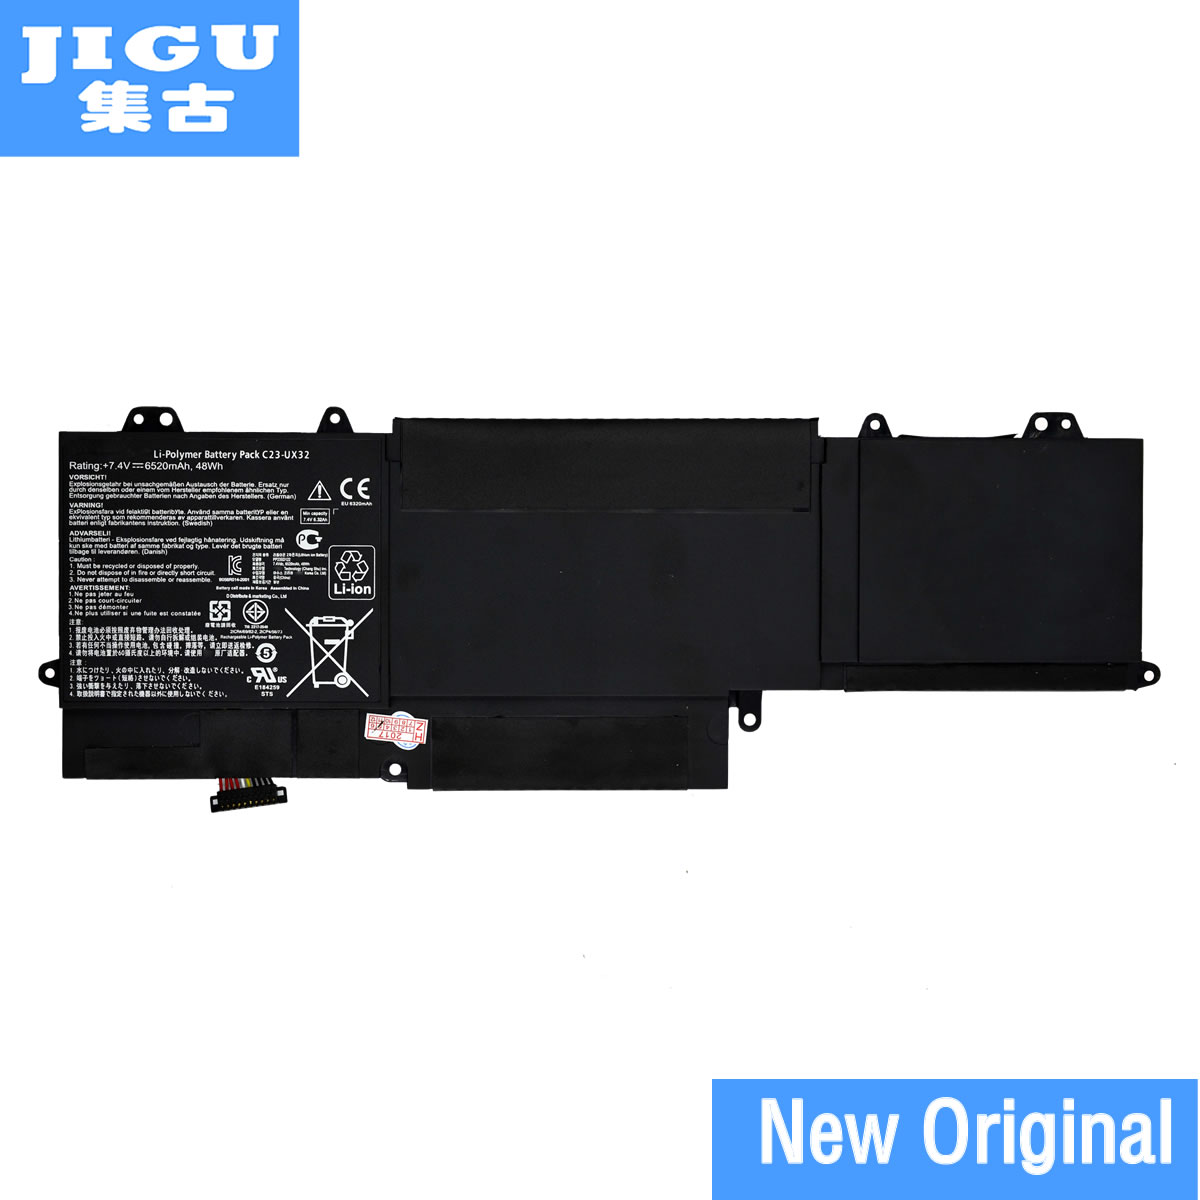 JIGU C23-UX32 Original laptop Battery For Asus VivoBook U38N U38K U38DT for Zenbook UX32 UX32VD UX32LA 7.4V 48WH мини колонки asus 2 0 dt 20b